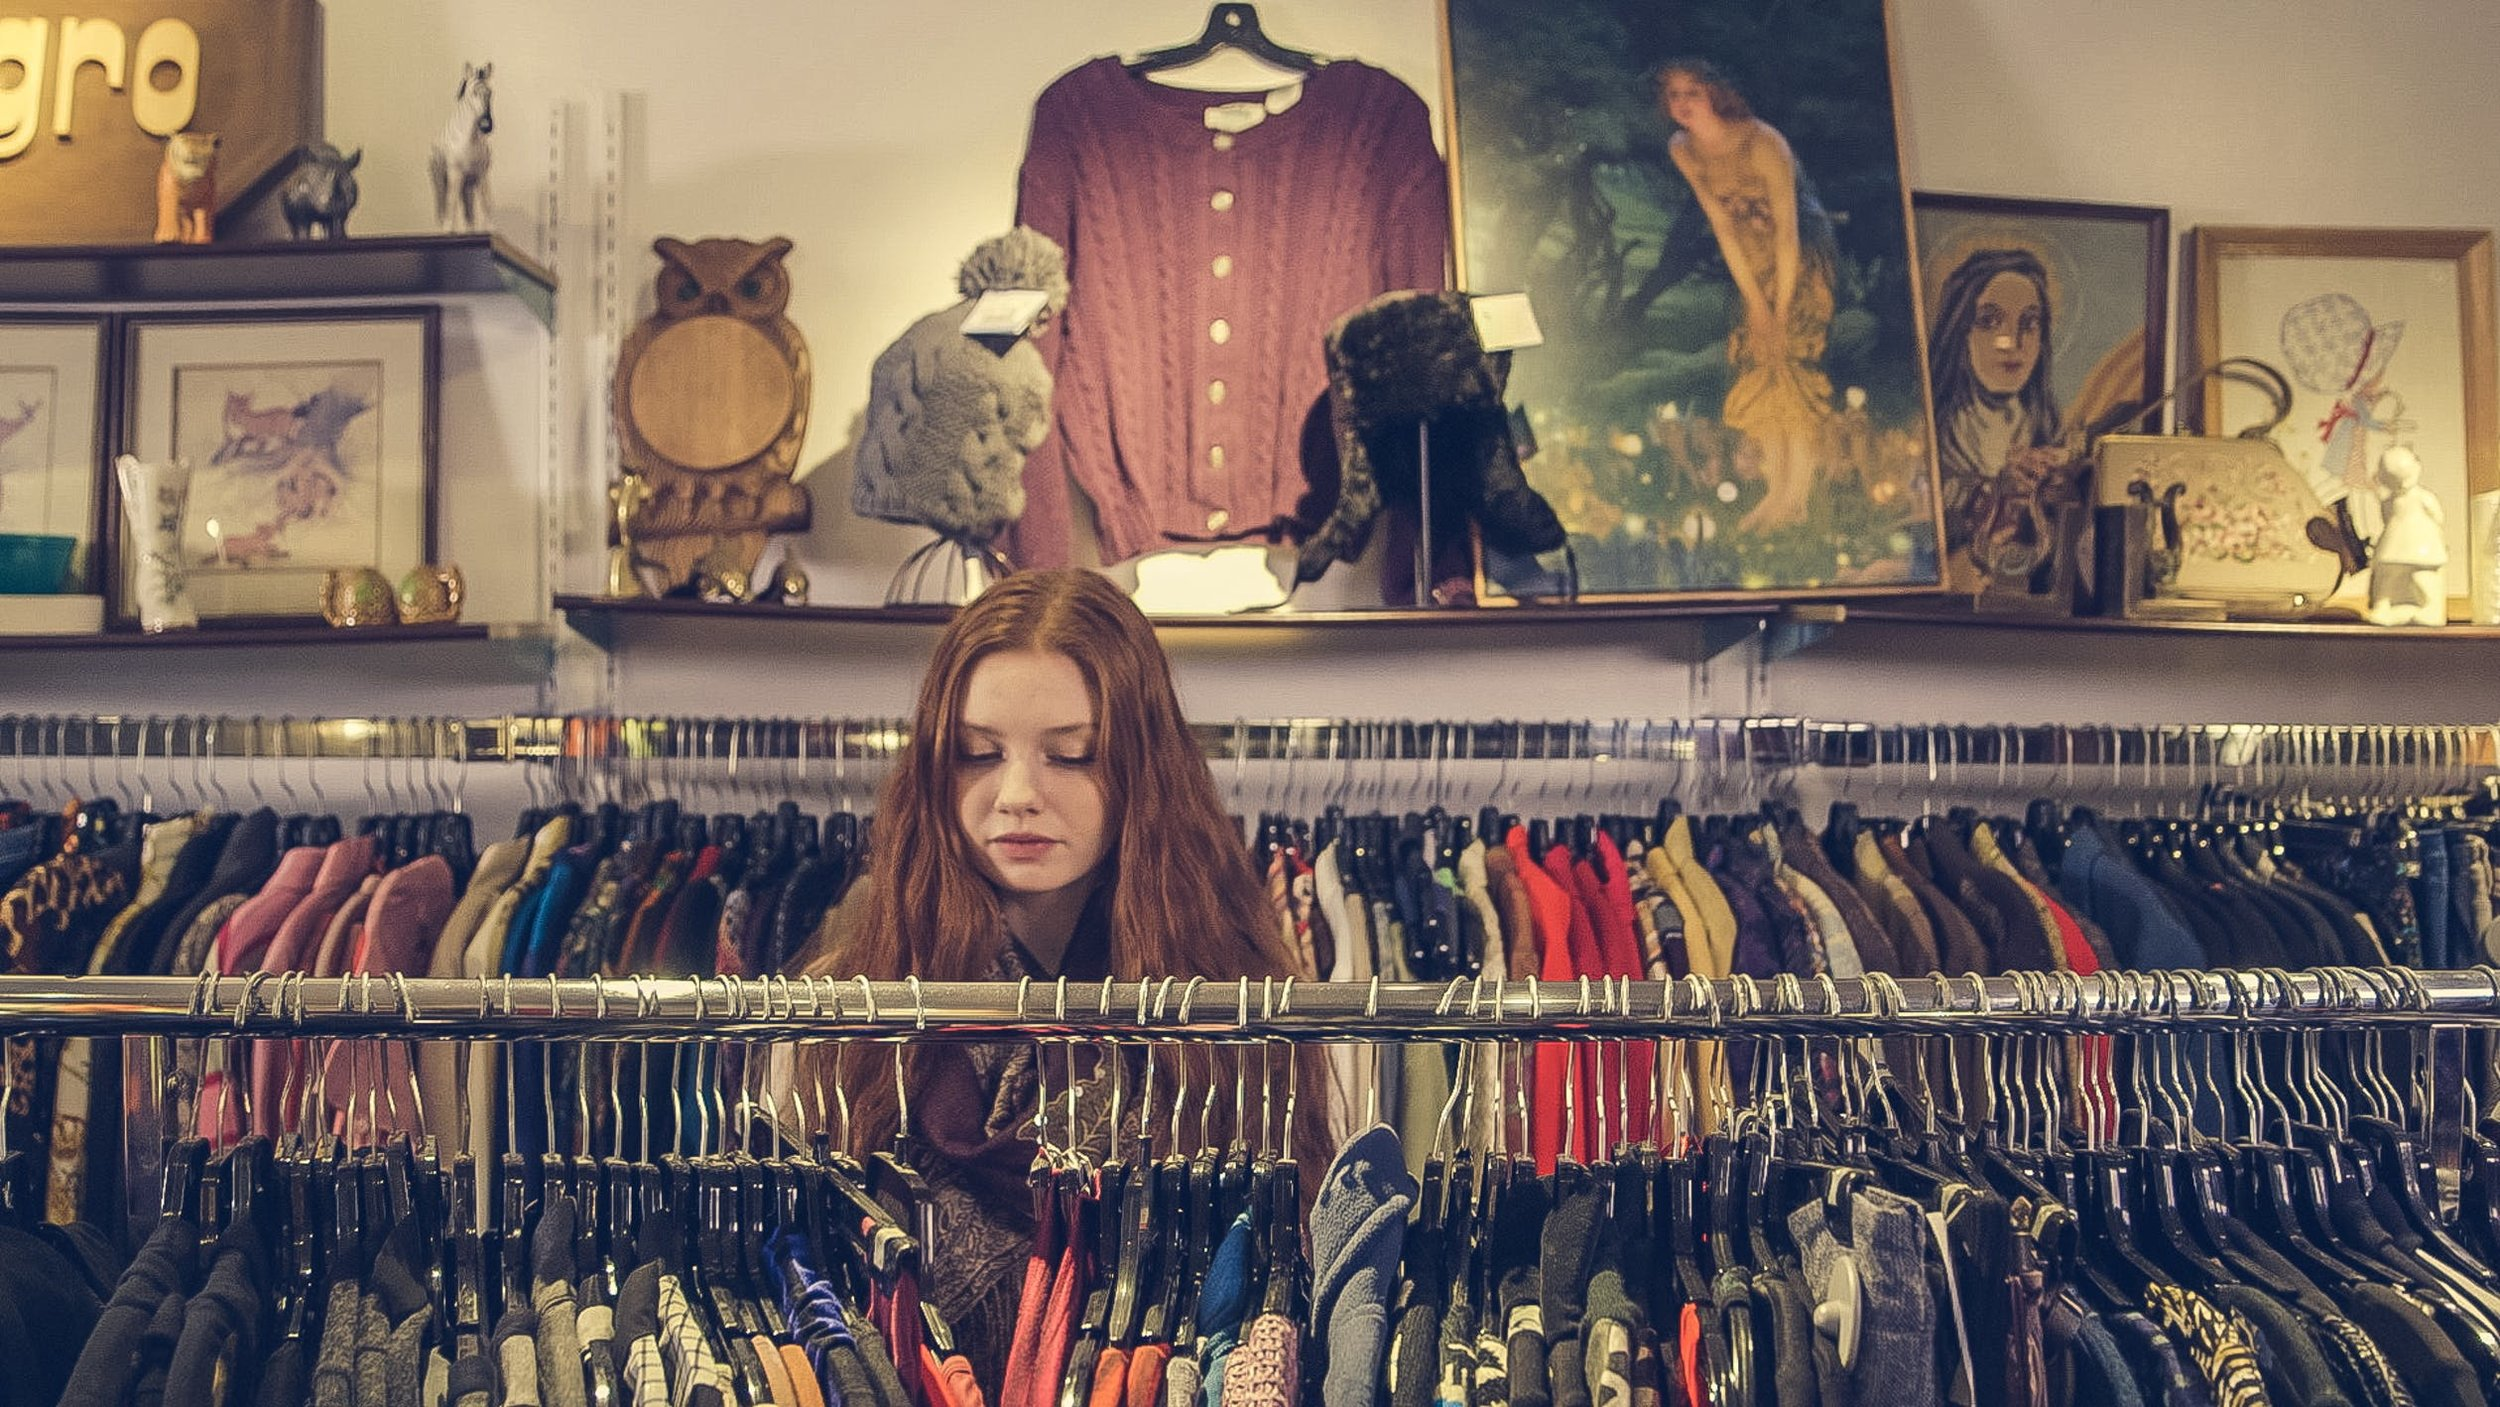 """Opp Shopping is fun. You never know what you're going to find. Sometimes its nothing. So in todays """"i need it now"""" society, it can be hard to deal with. Image Source - Pexels.com"""